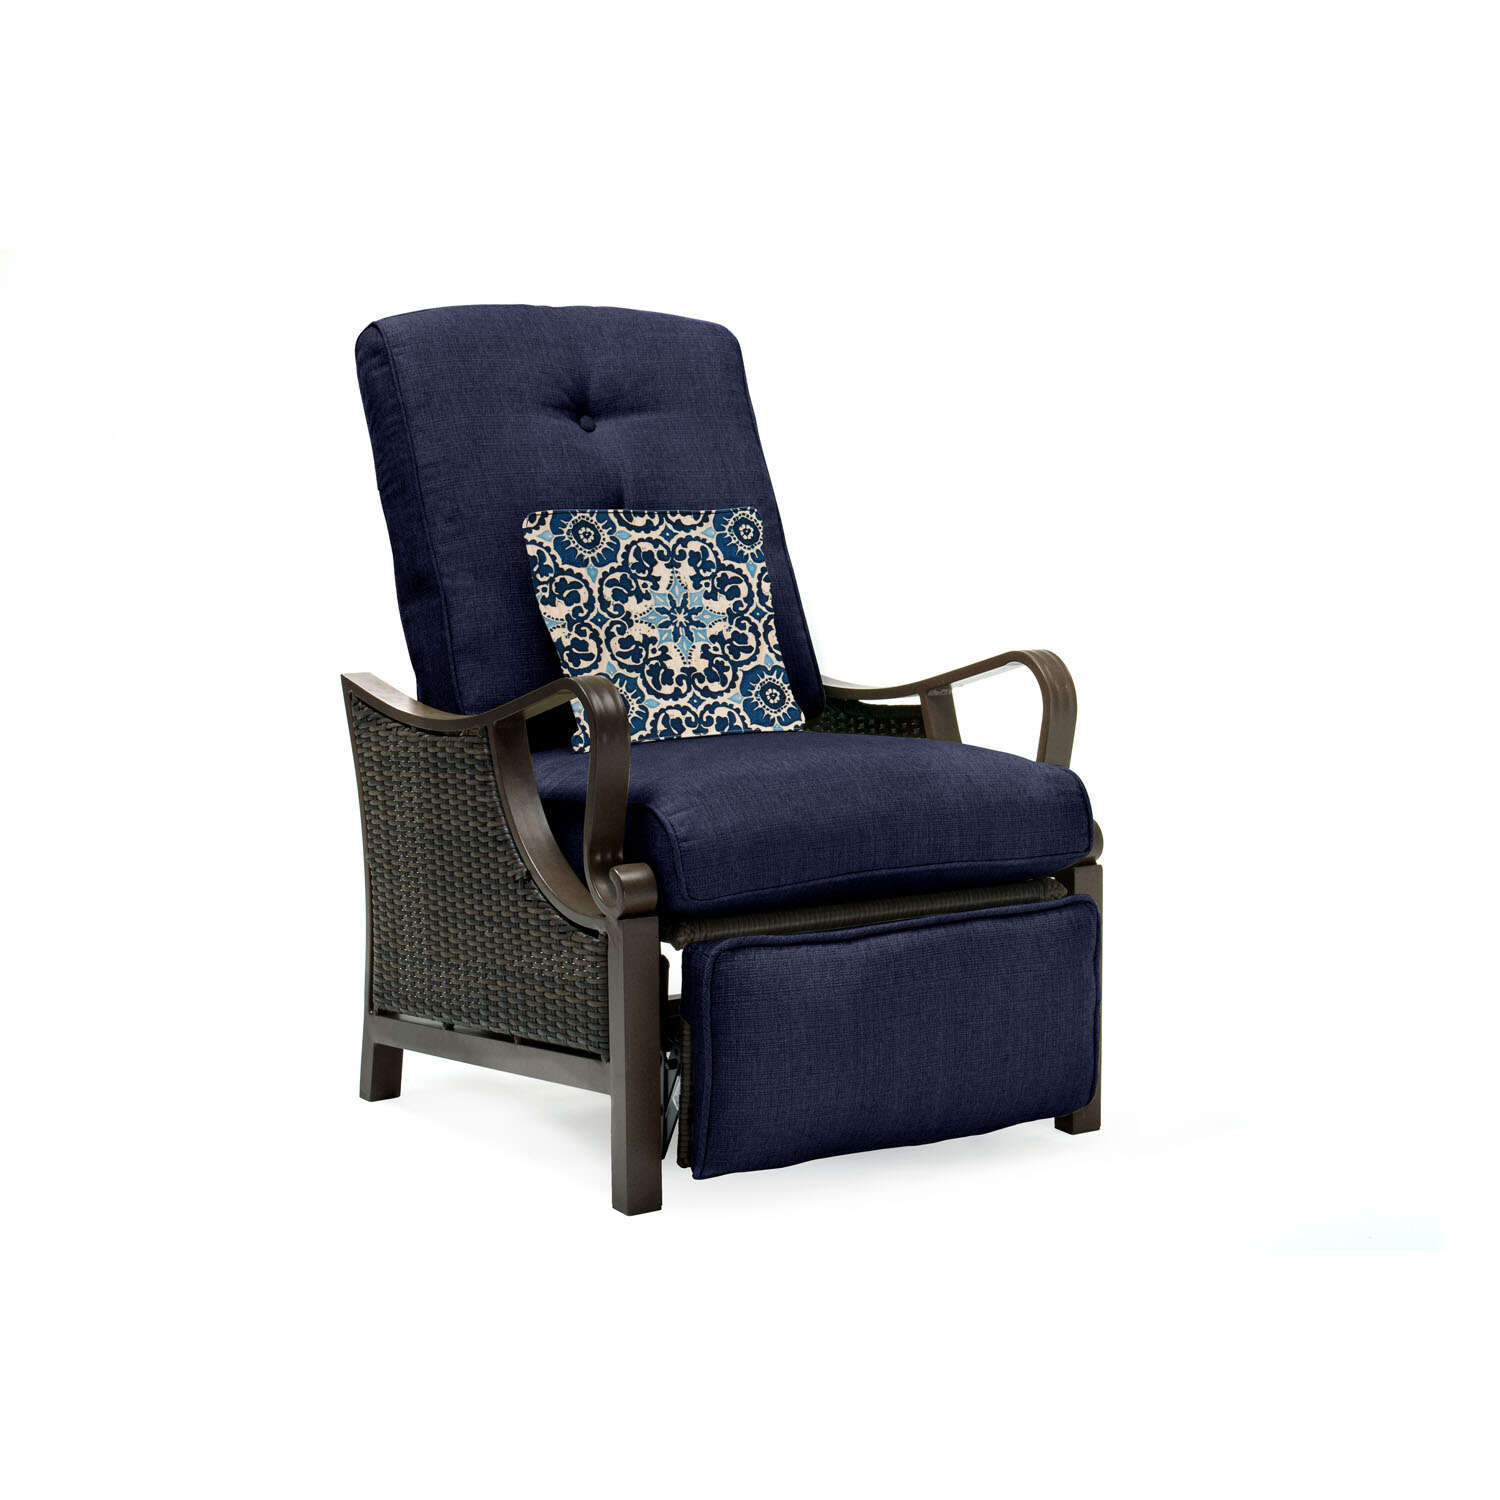 Hanover  Ventura  1 pc. Steel Frame Reclining Chair  Navy Blue